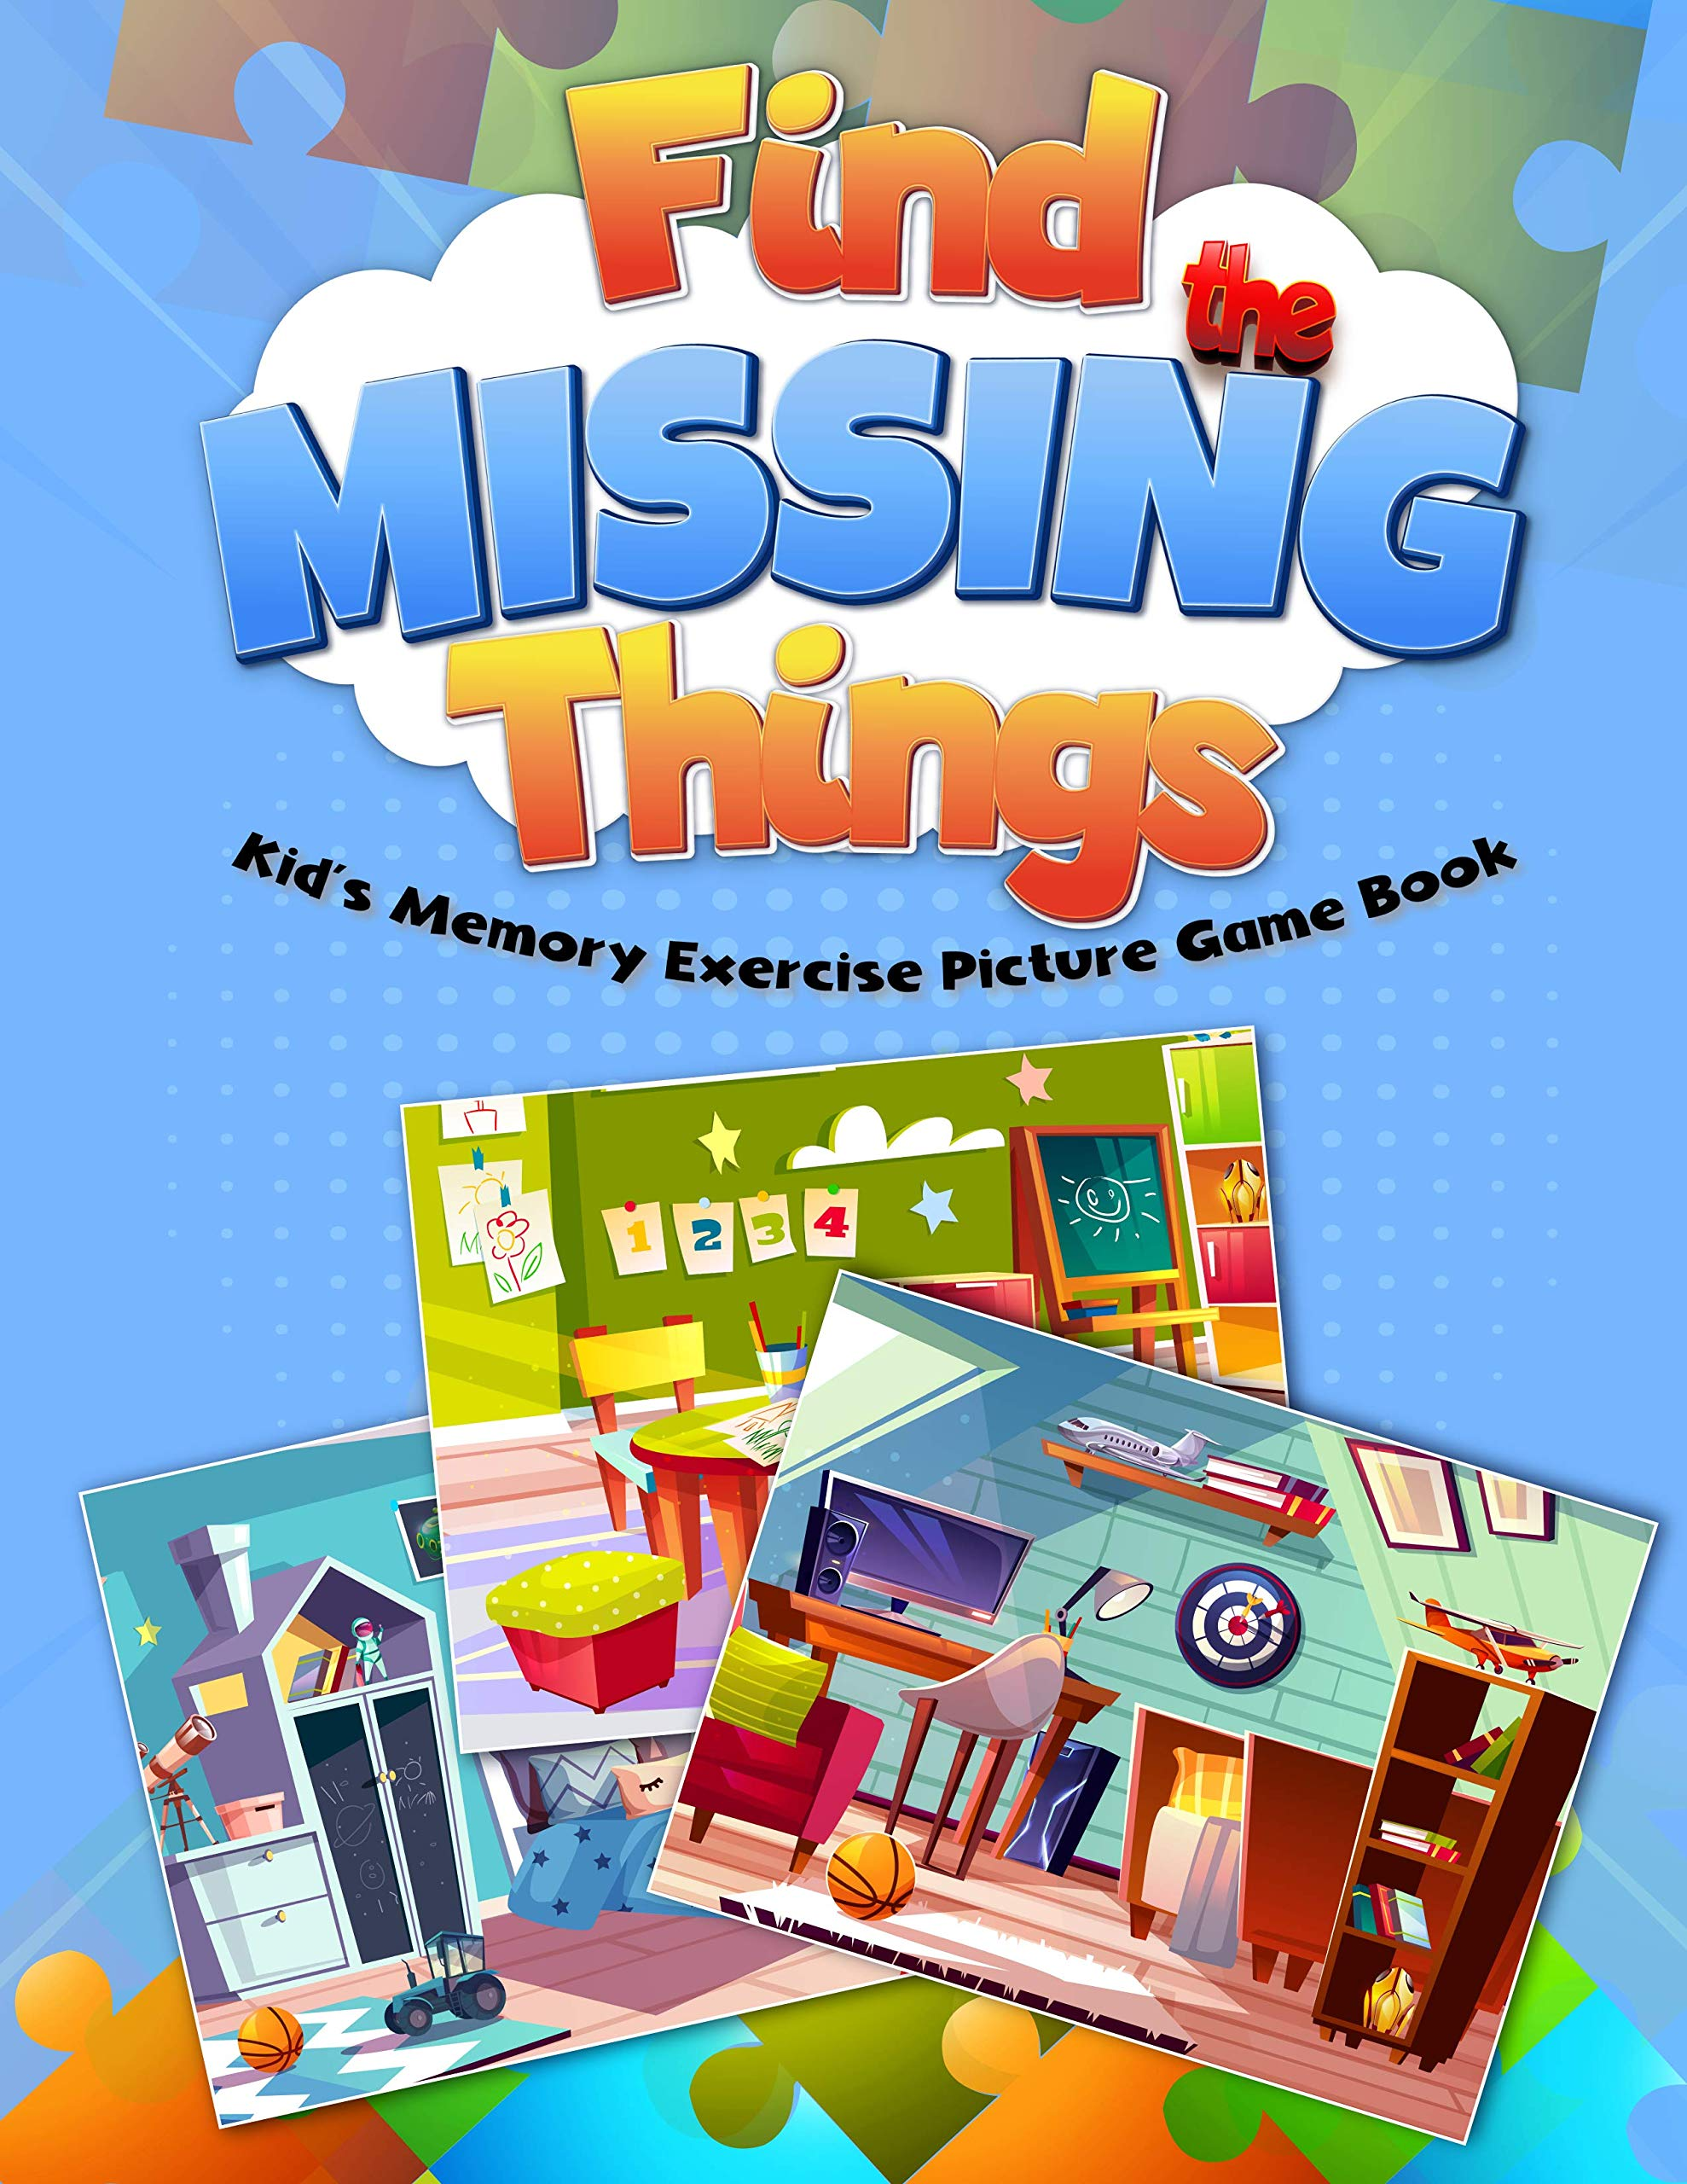 Find the Missing Things Kid's Memory Exercise Picture Game Book: 15 room pictures, 3 scenarios of missing objects; kids search the things & have fun; word learning, brain & memory exercise, ages 4-9